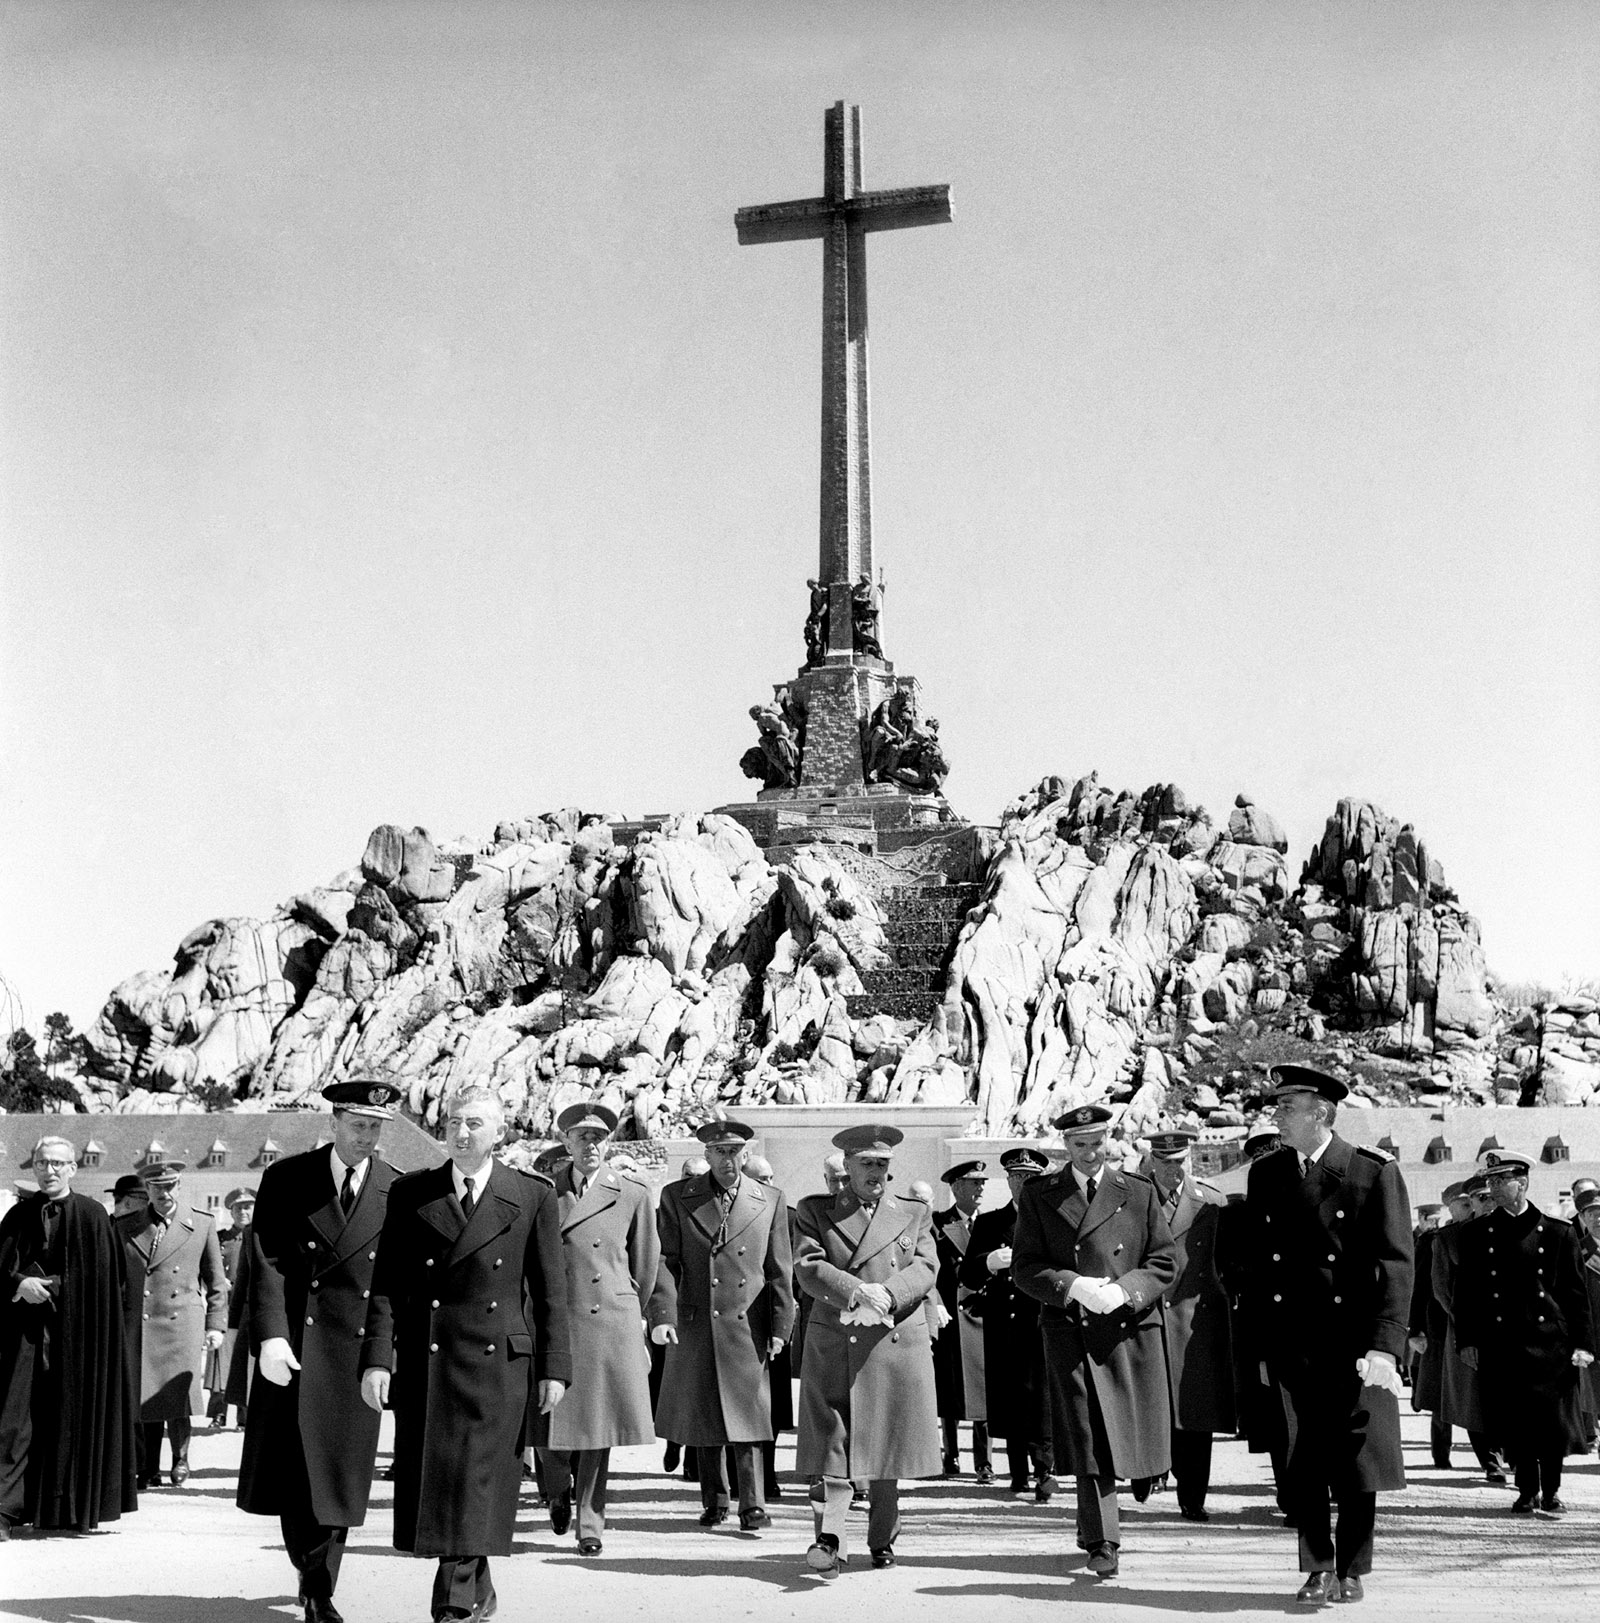 Franco t the inauguration of the Valley of the Fallen, Madrid, April 1959